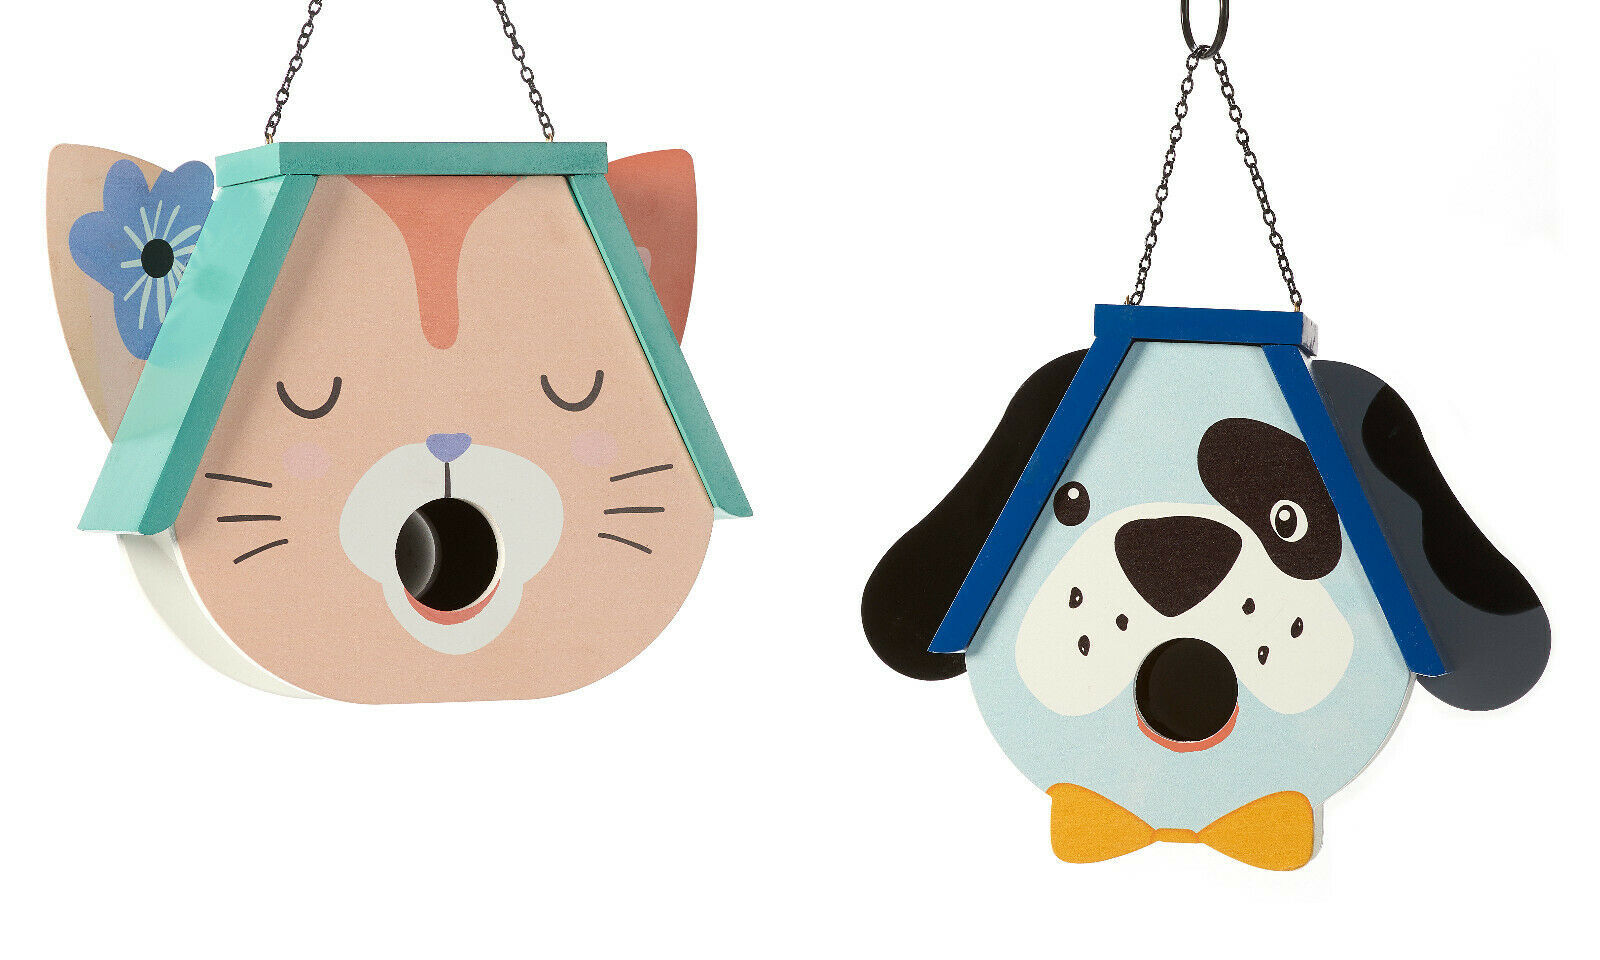 Pet Head Shaped Bird House Detailed w Hole at Mouth - Choice of Dog or Cat Head